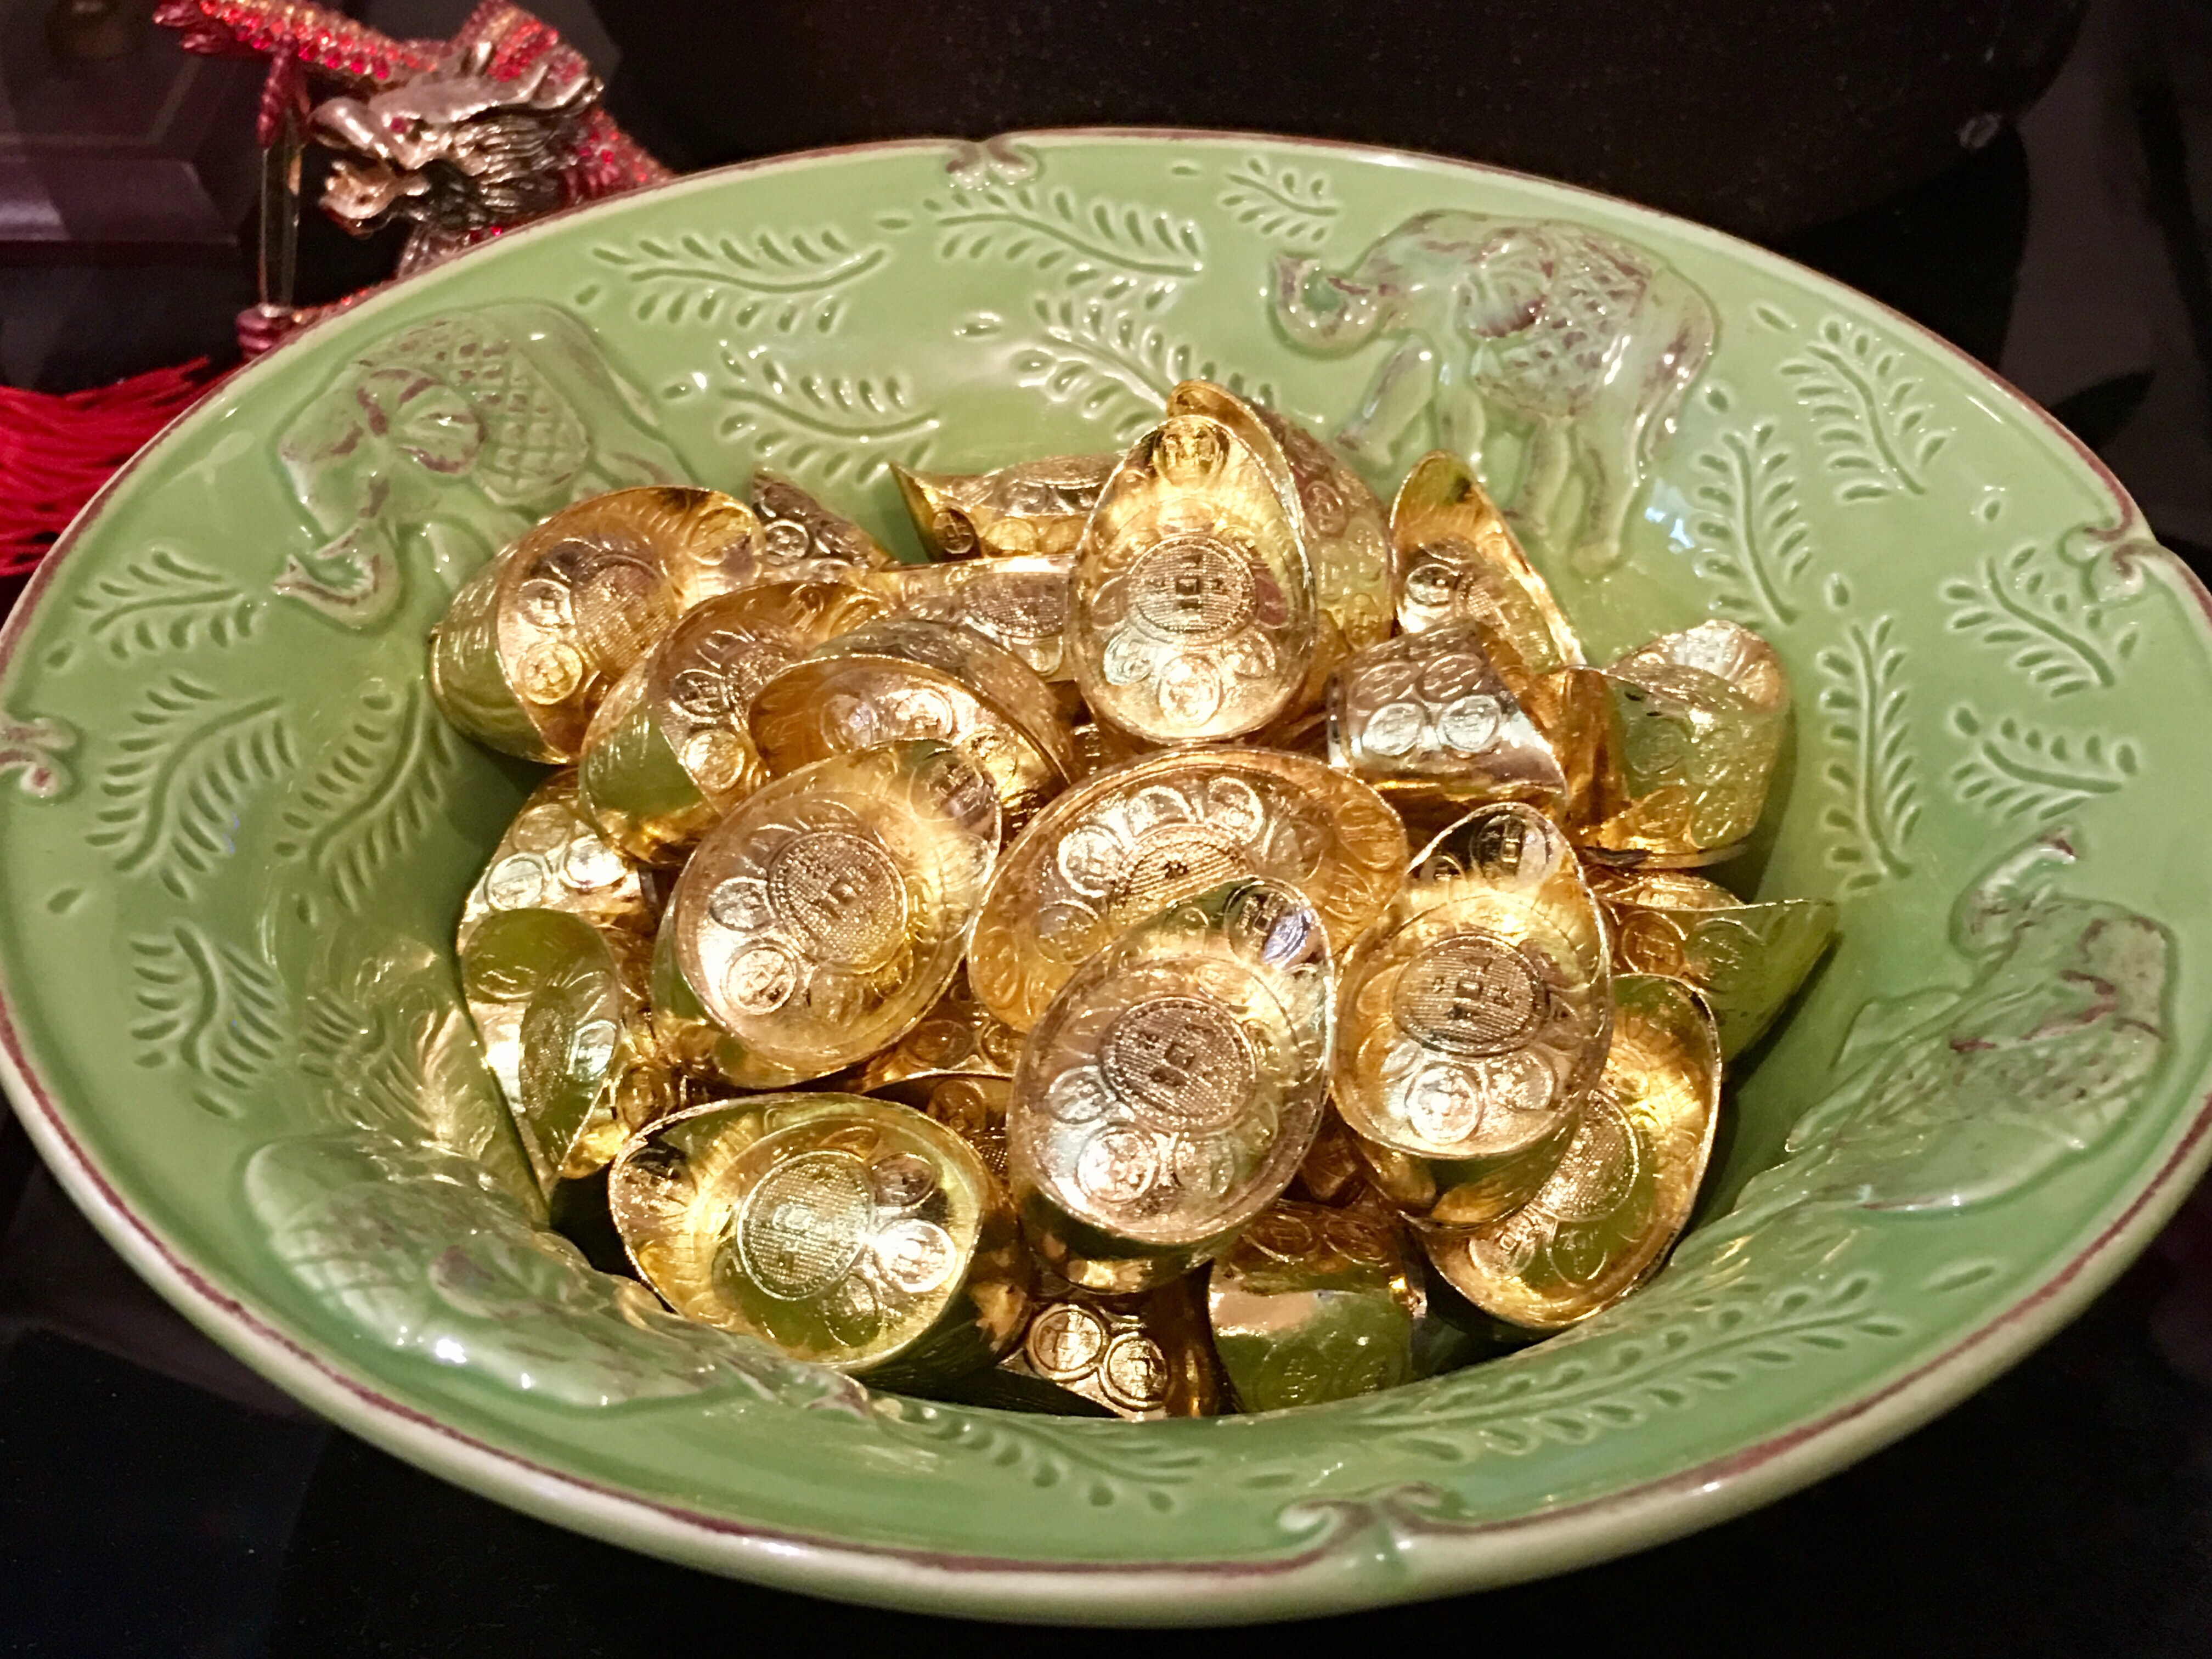 Feng shui tip ingots as wealth enhancers blooming mushroom if you have wealth ships or wealth vases then put ingots in it too as it will help increase your affluence reviewsmspy